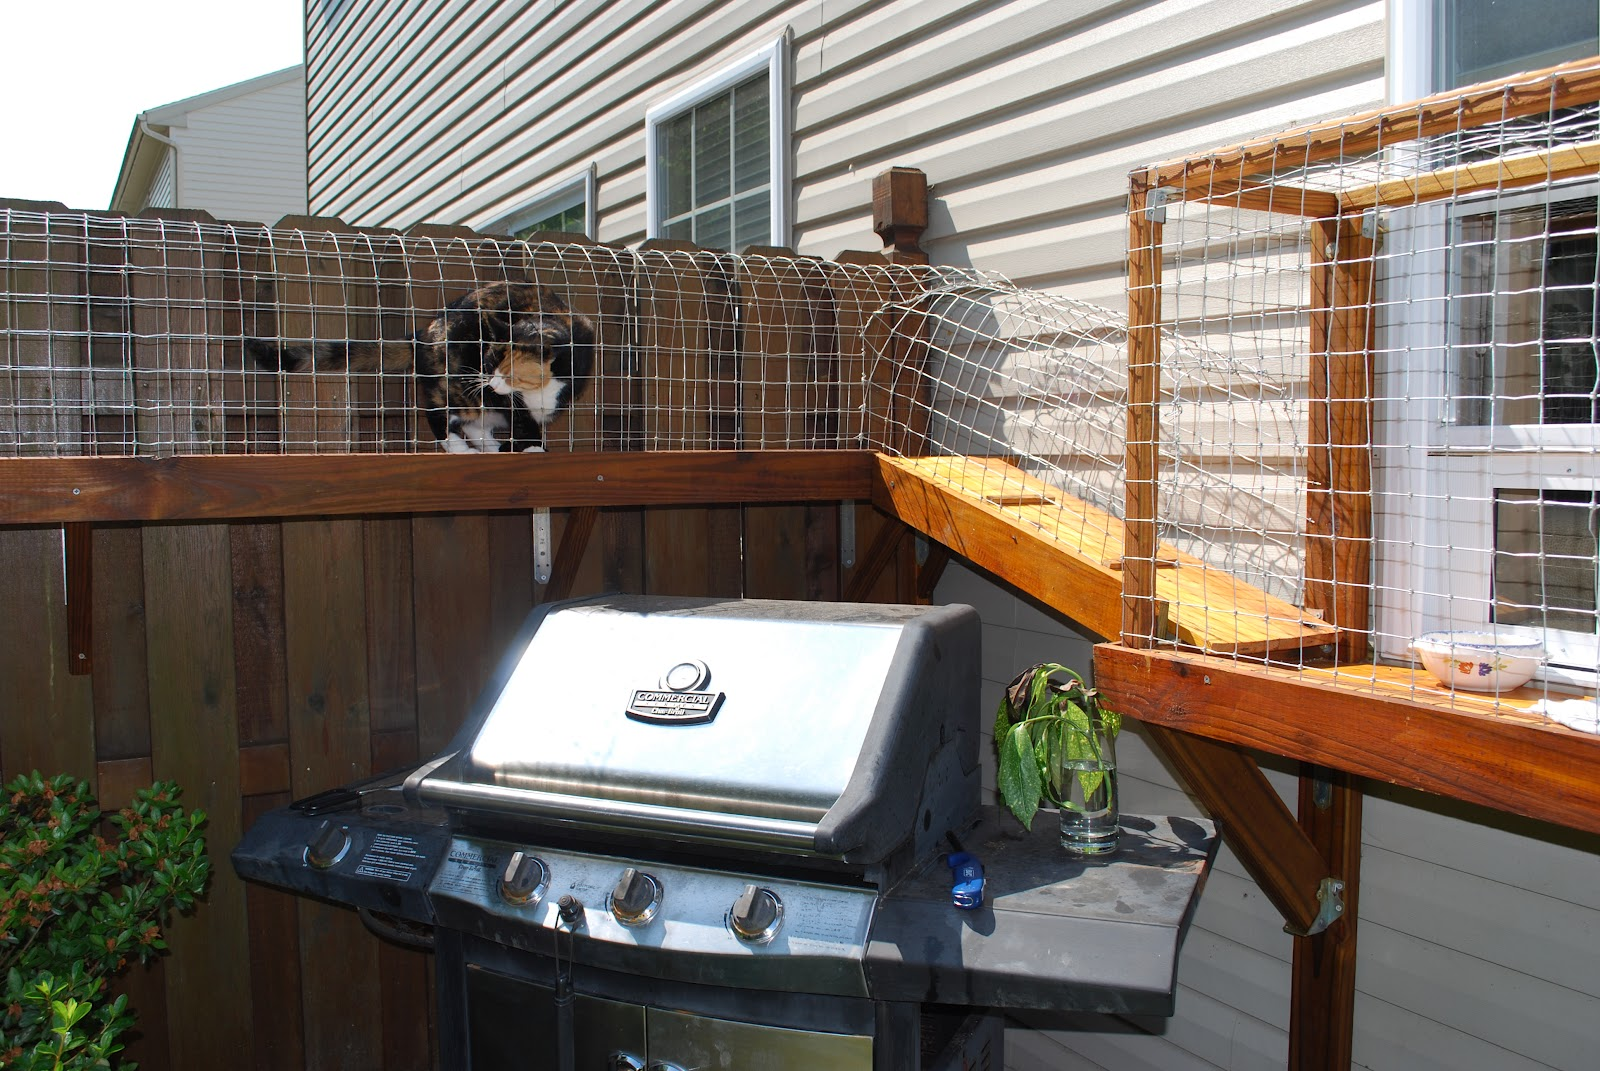 Easy Diy Cat Enclosure To Keep Your Indoor Cats Happy And Safe Exterior Wiring Enclosures